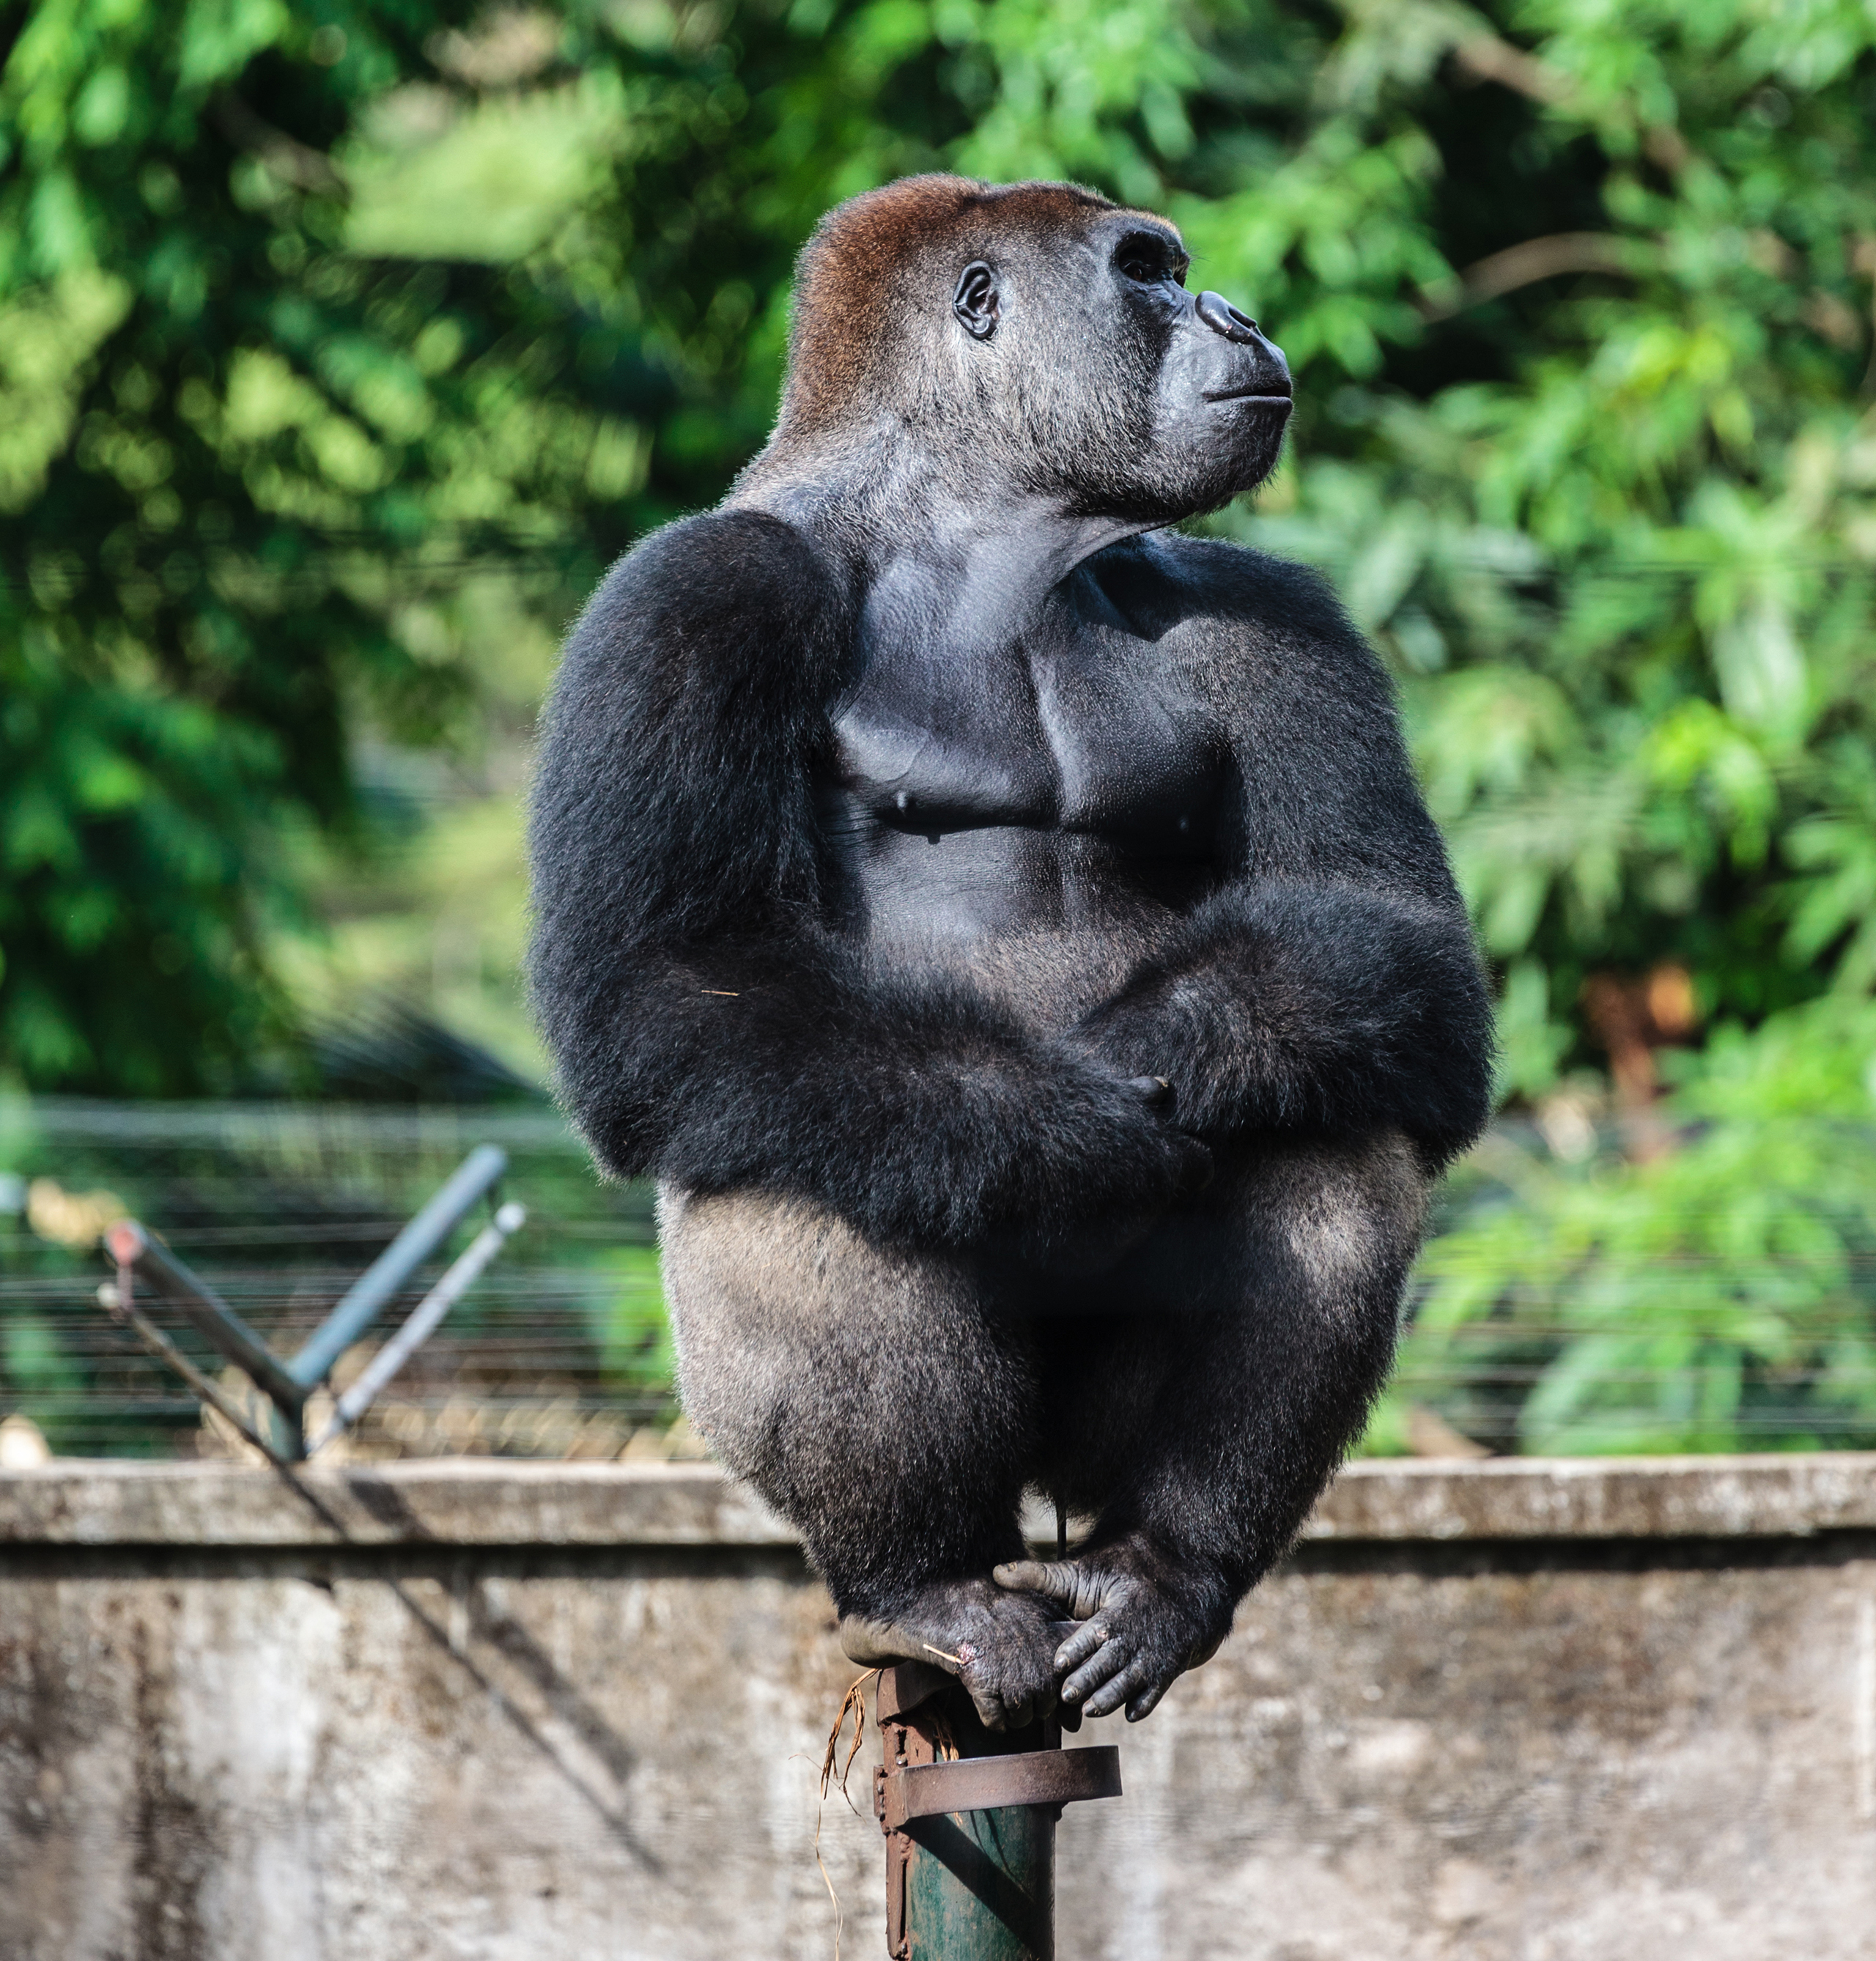 Cross River Gorilla Limbe Wildlife Center, Cameroon. Around 200 individuals of this subspecies of western gorilla live in the rugged territory between Cameroon and Nigeria.  They are at risk for hunting, as enforcement of wildlife laws in these areas is often lax.